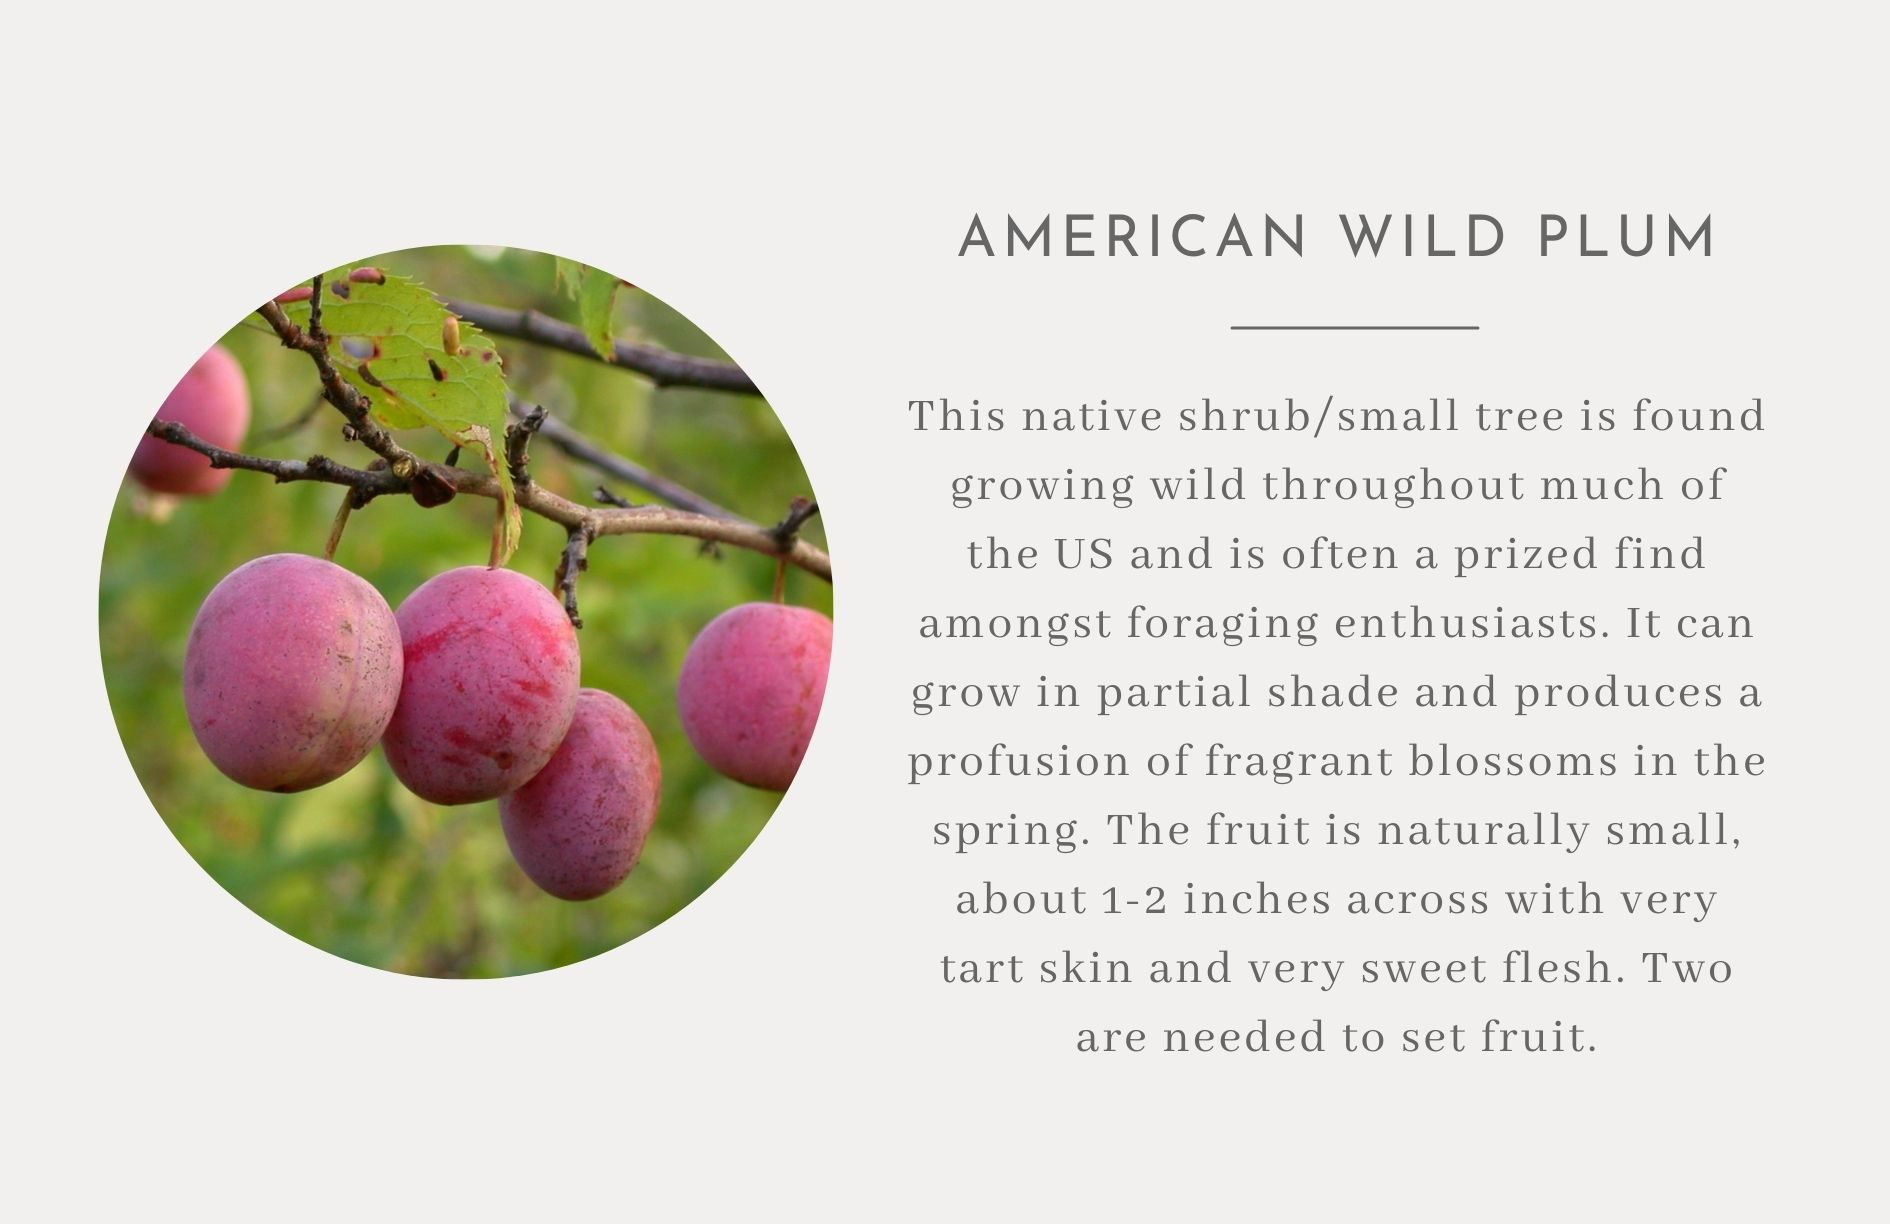 American Wild Plum - Edible trees and bushes